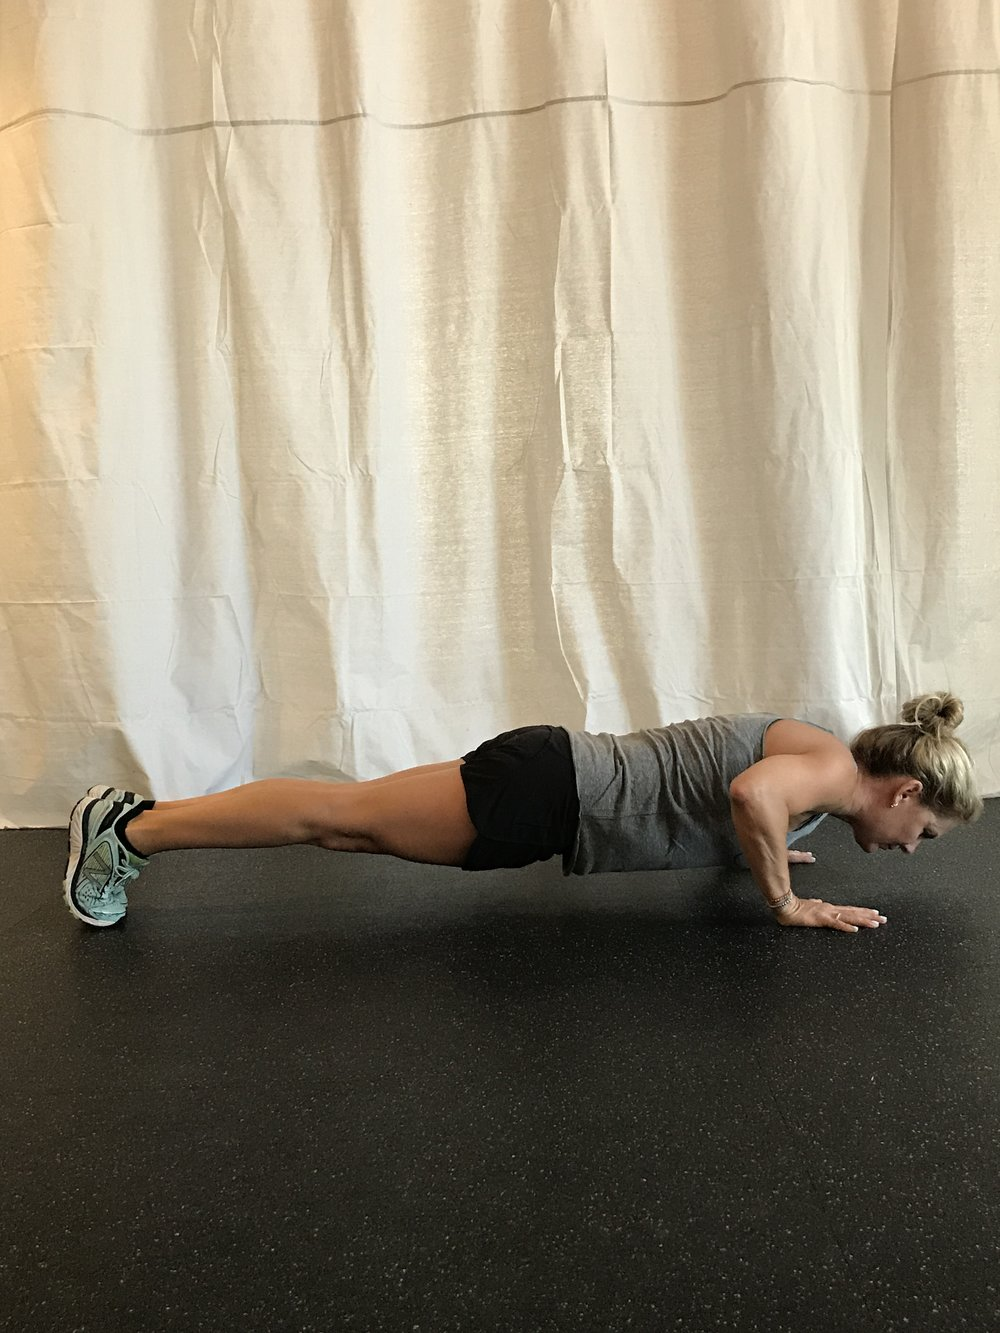 Bottom of the full pushup: core and legs engaged, hands supporting you.